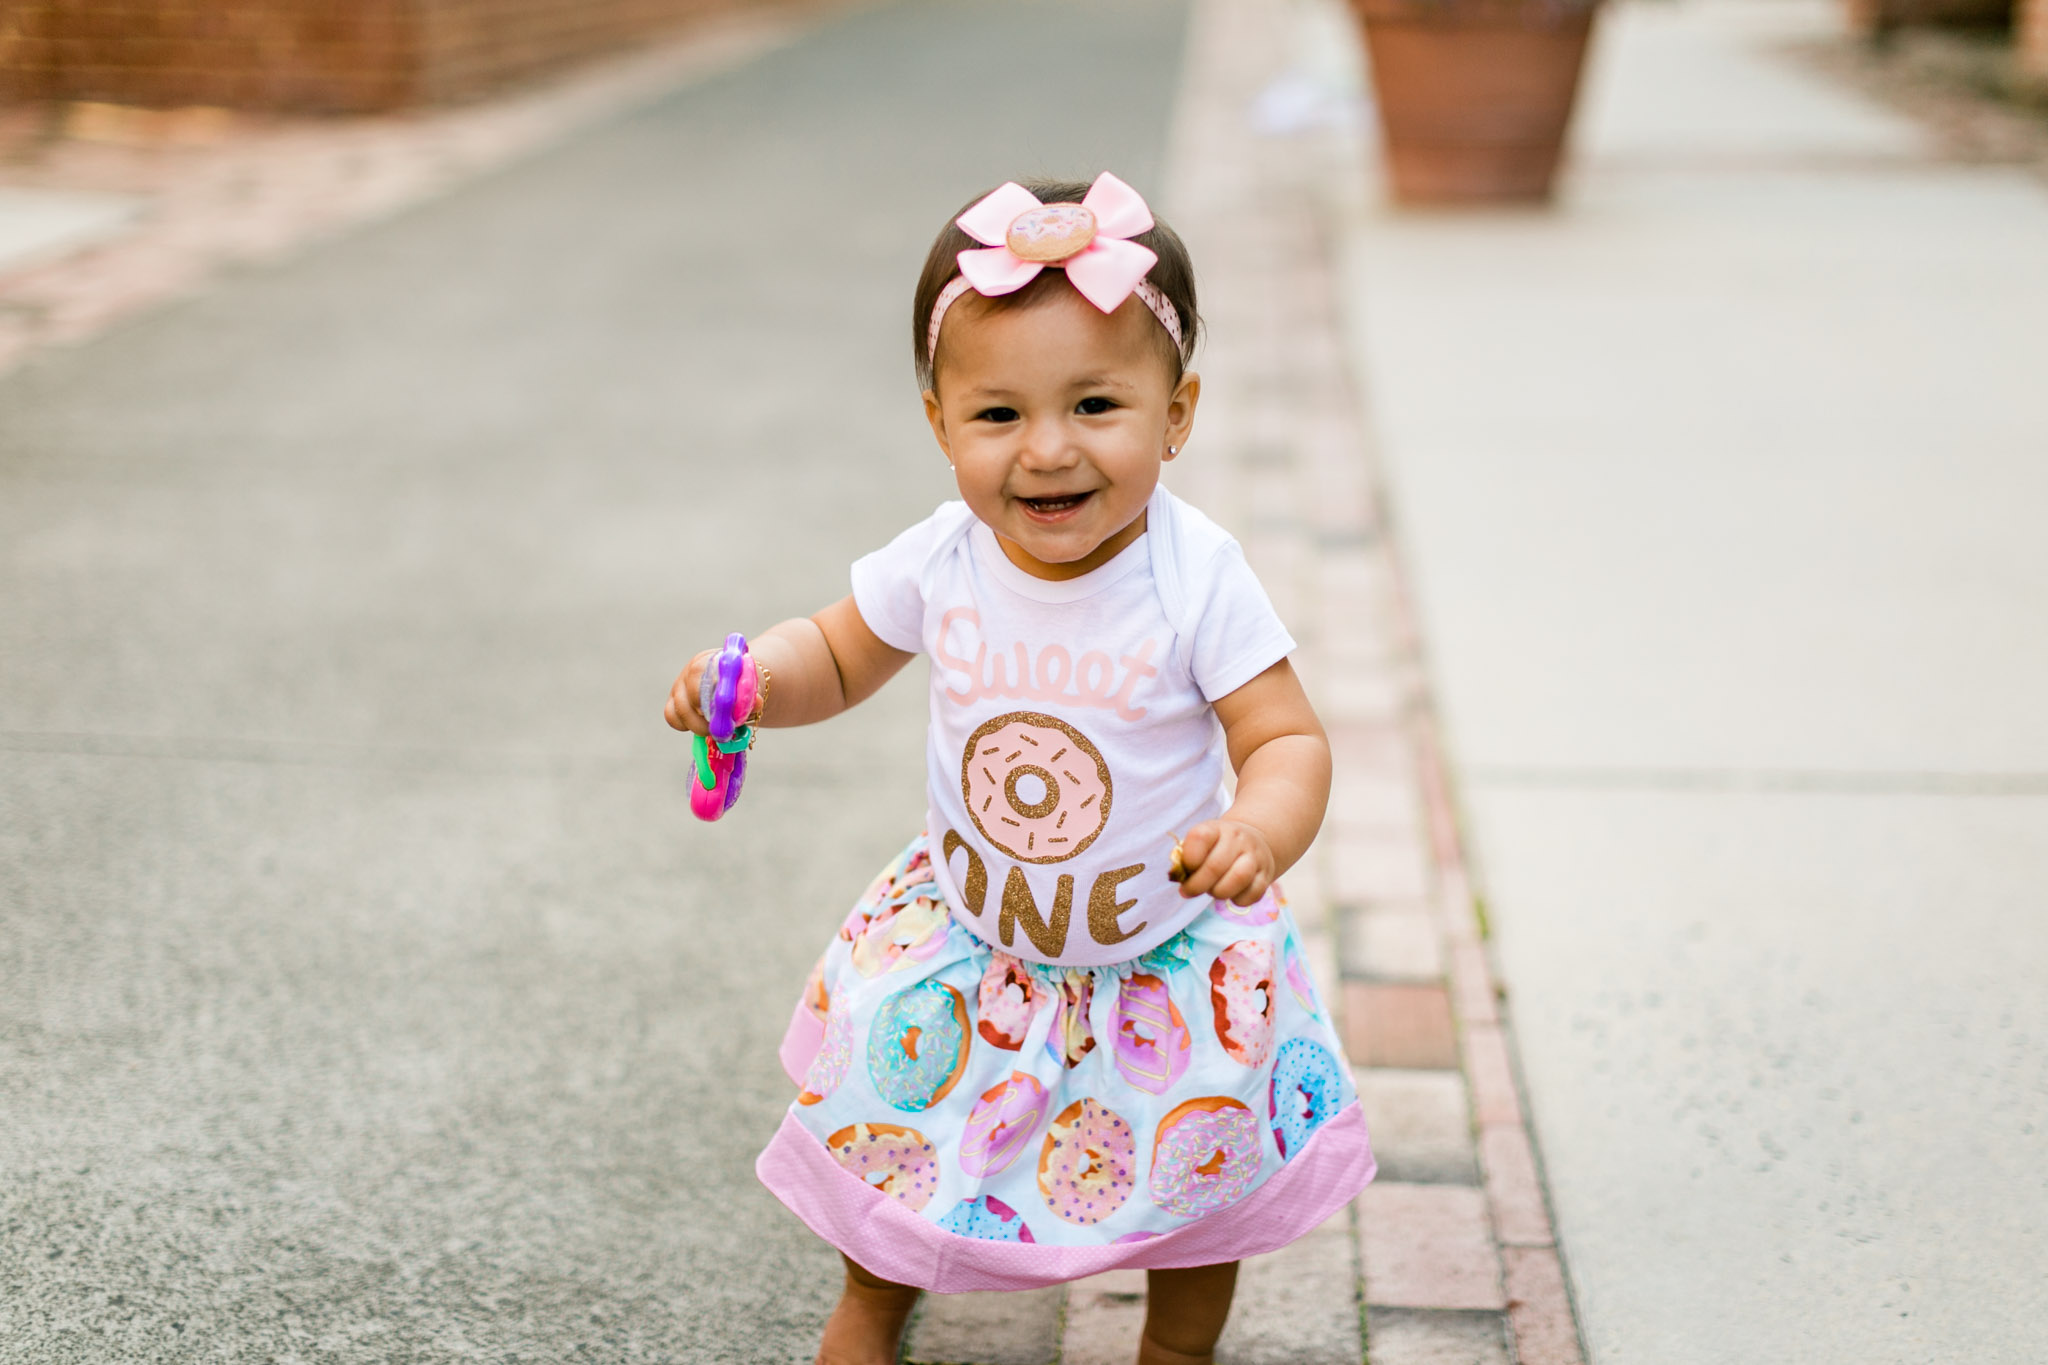 Cute baby girl walking by herself outside | Durham Photographer | By G. Lin Photography